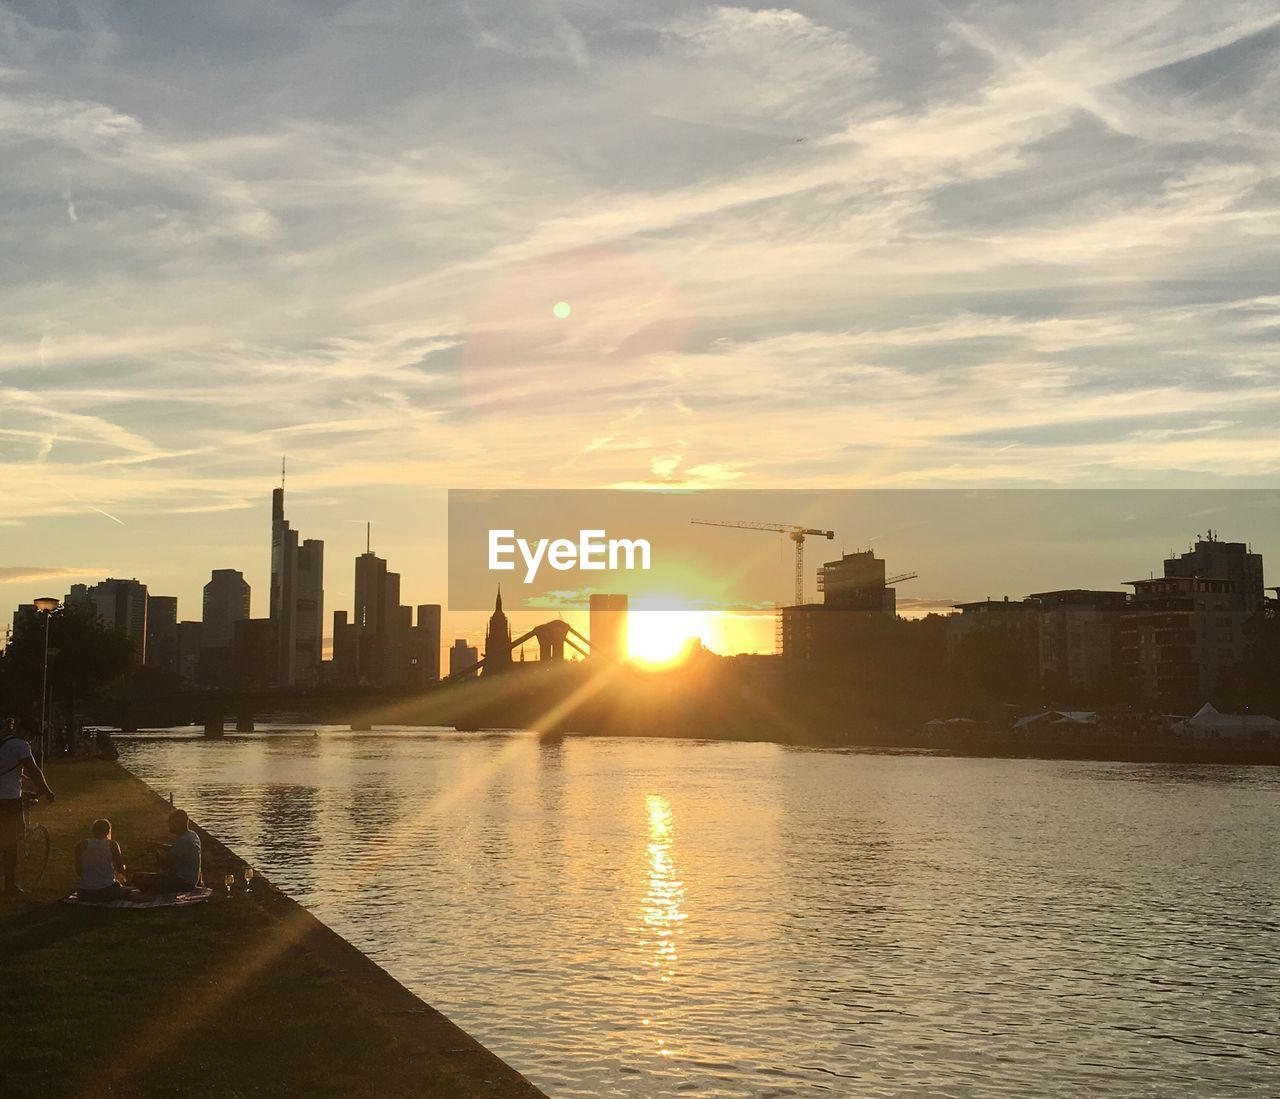 architecture, sunset, building exterior, built structure, city, skyscraper, cityscape, sky, sun, urban skyline, sunlight, cloud - sky, water, outdoors, waterfront, river, travel destinations, modern, no people, nature, day